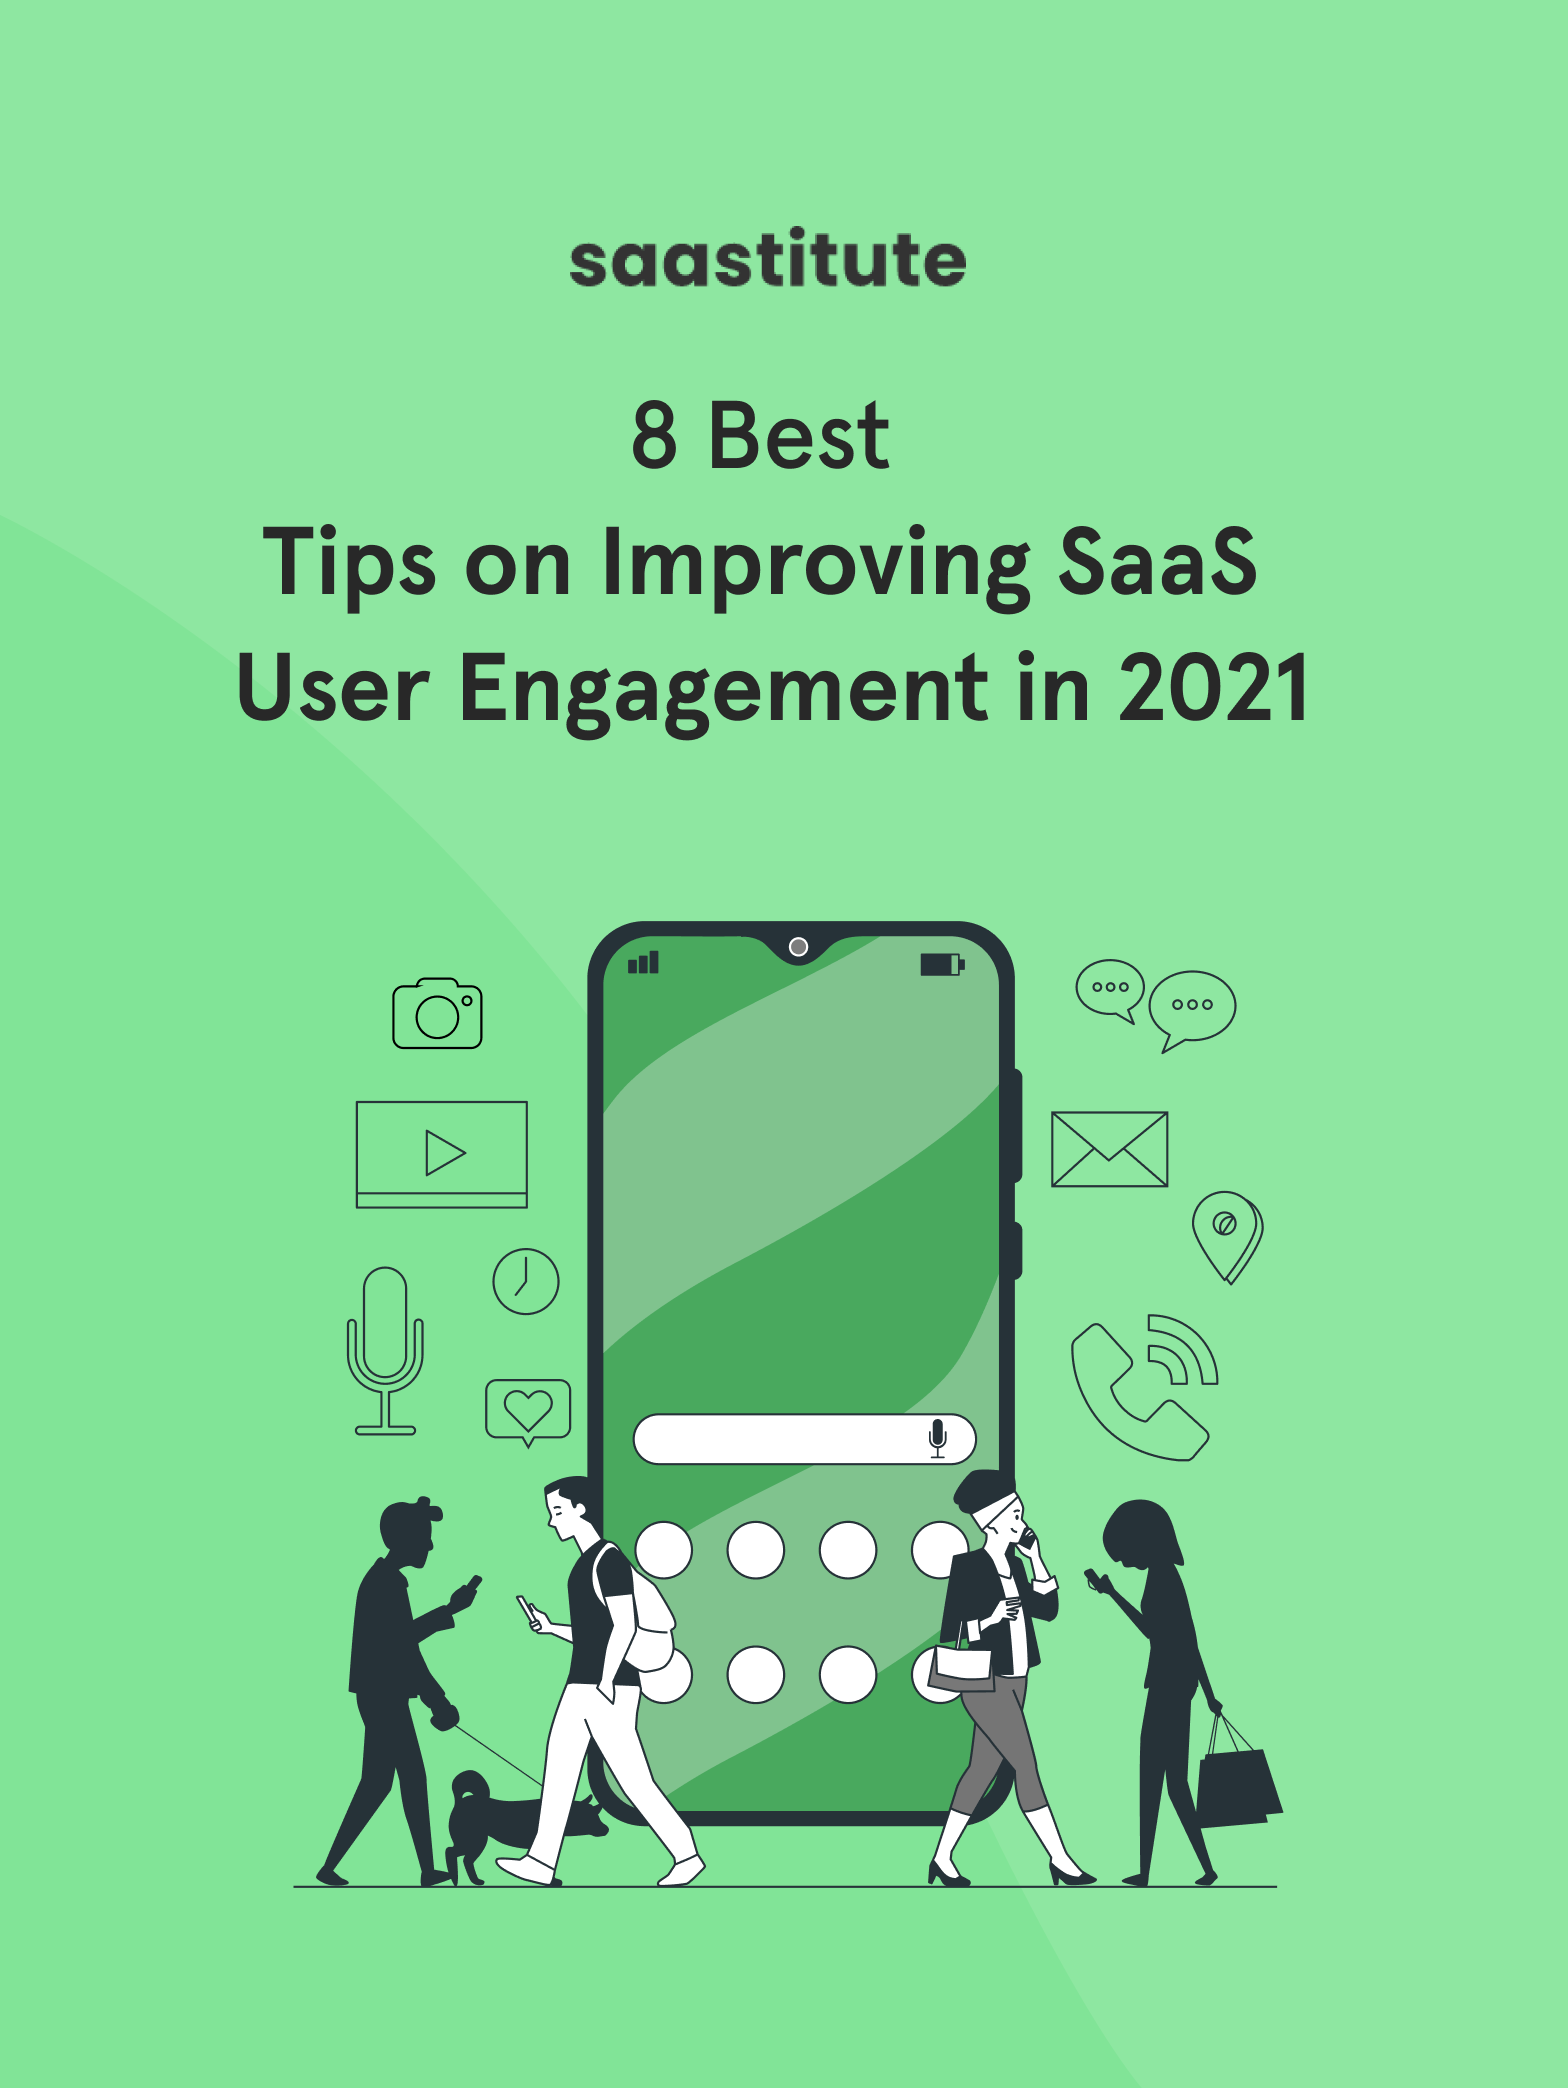 8 Best Tips on Improving SaaS User Engagement in 2021